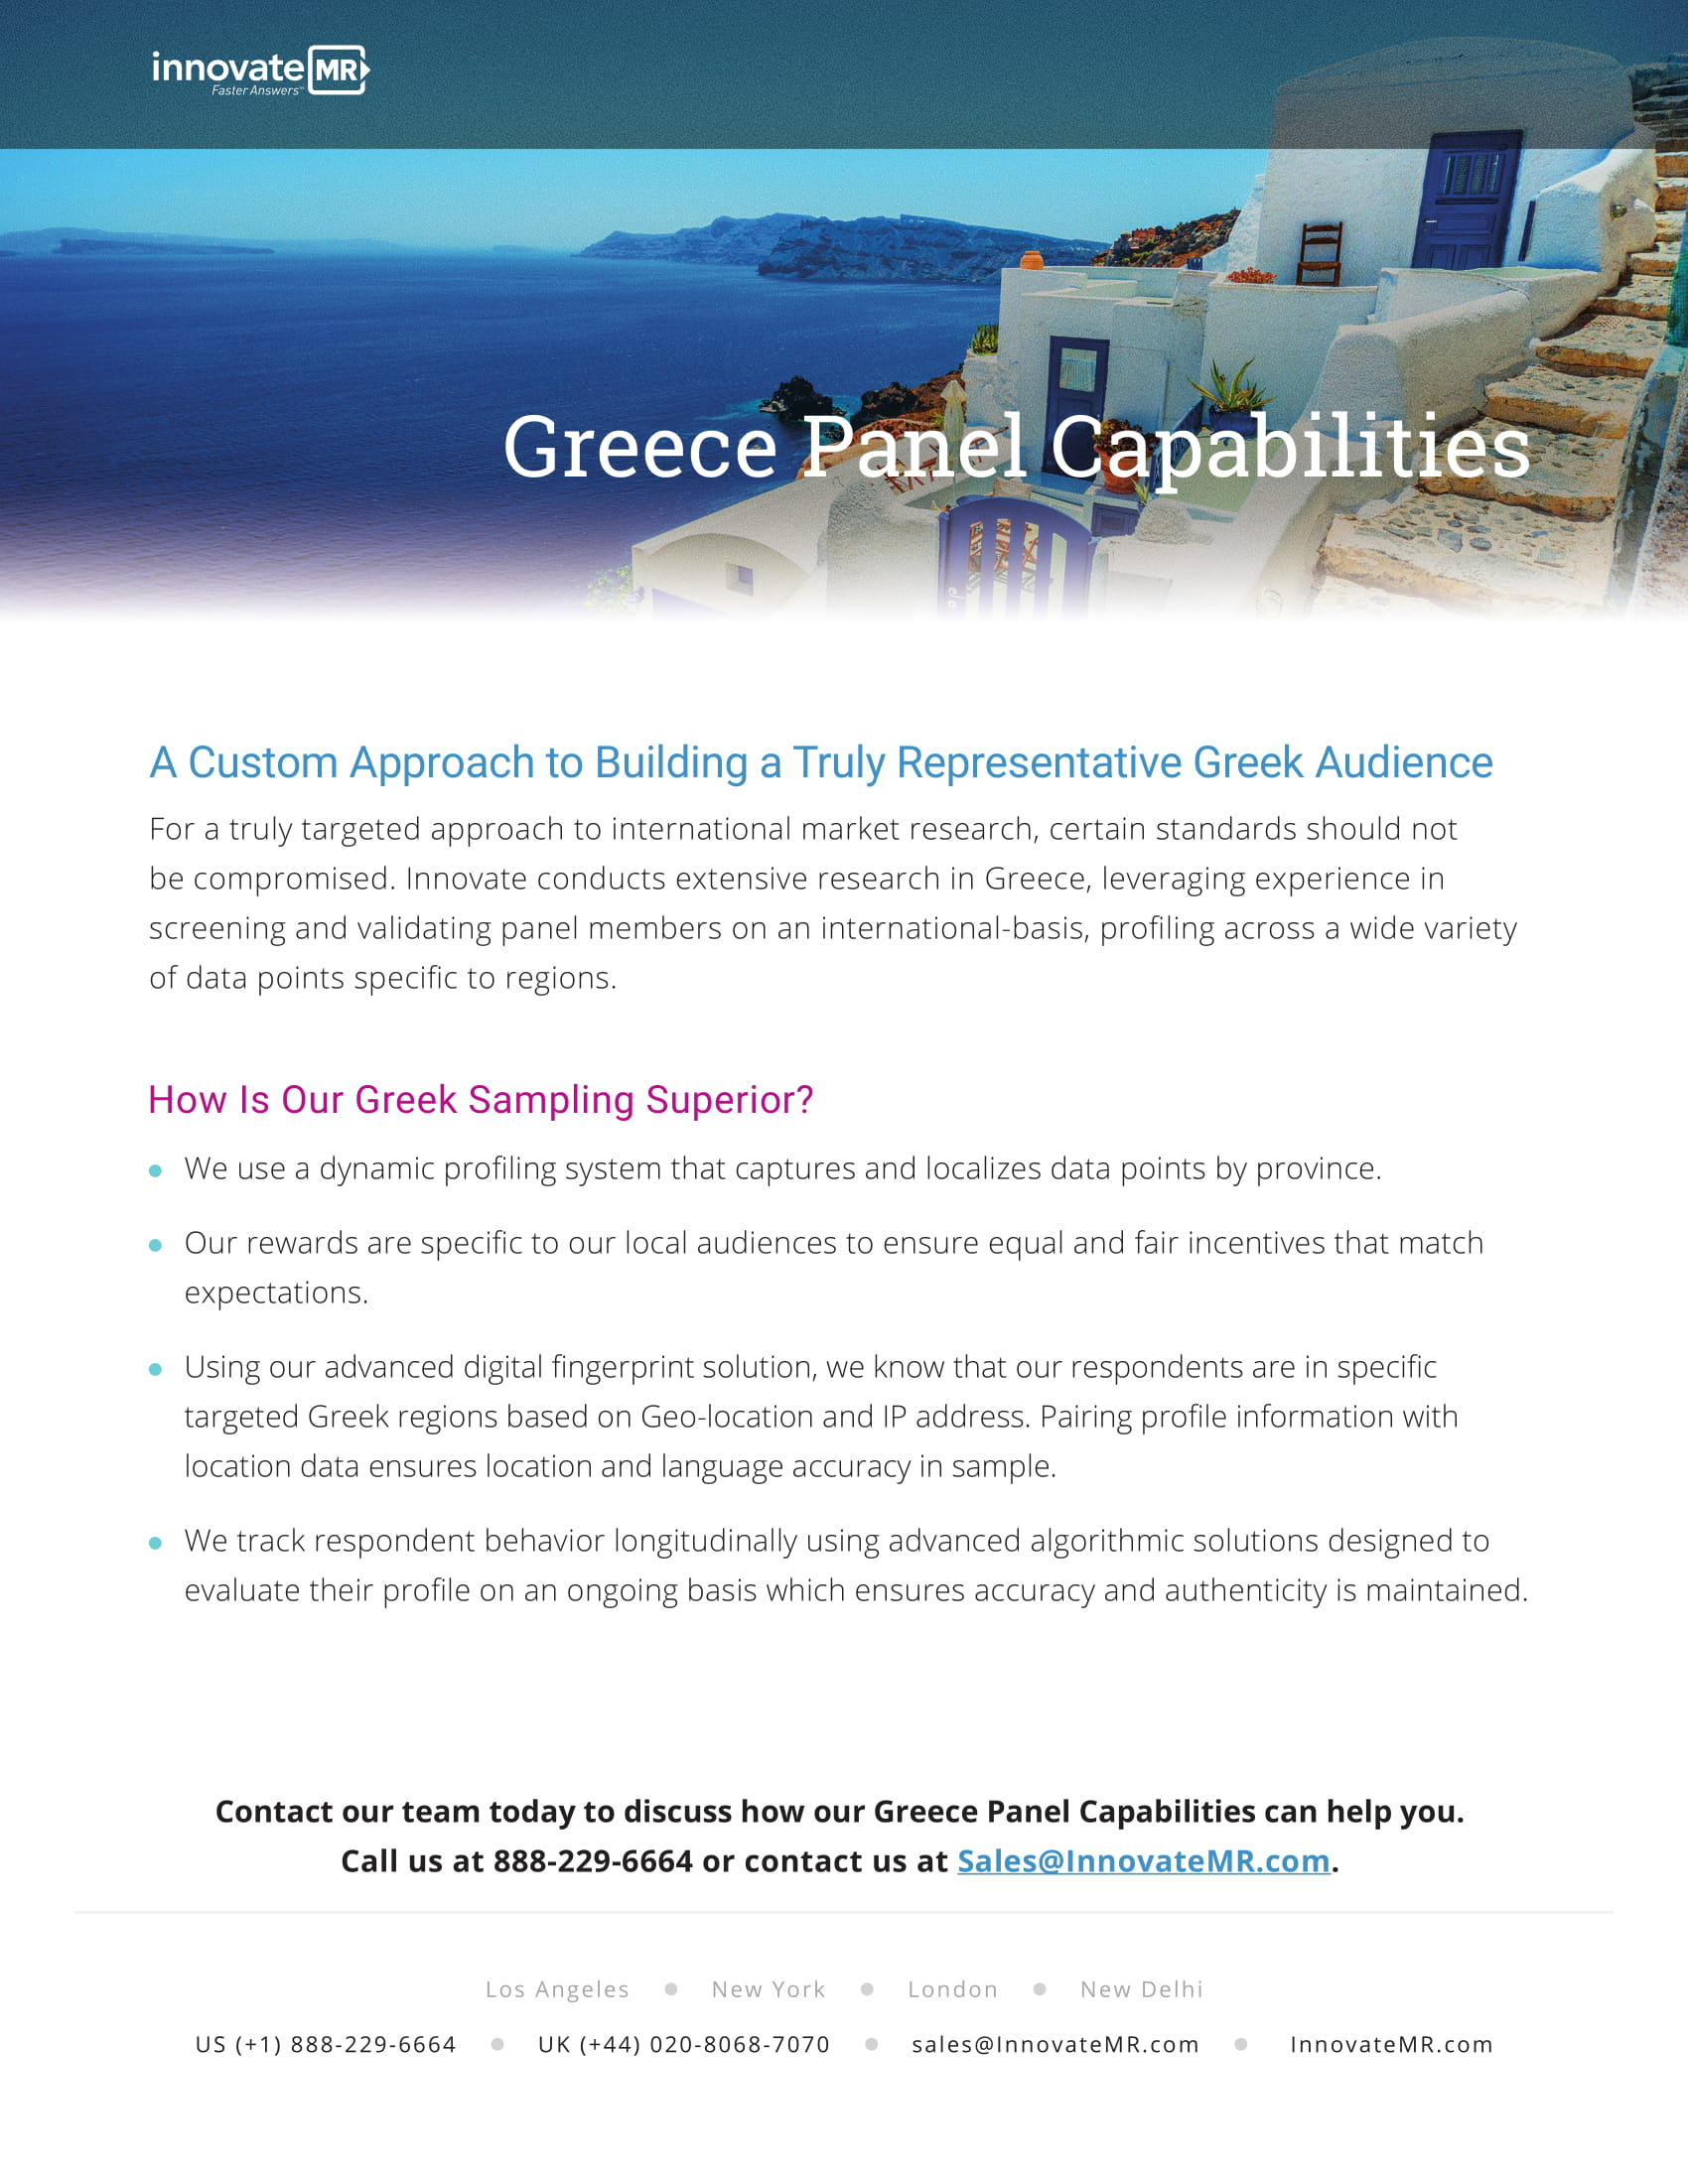 Innovate Greece Panel Capabilities-1